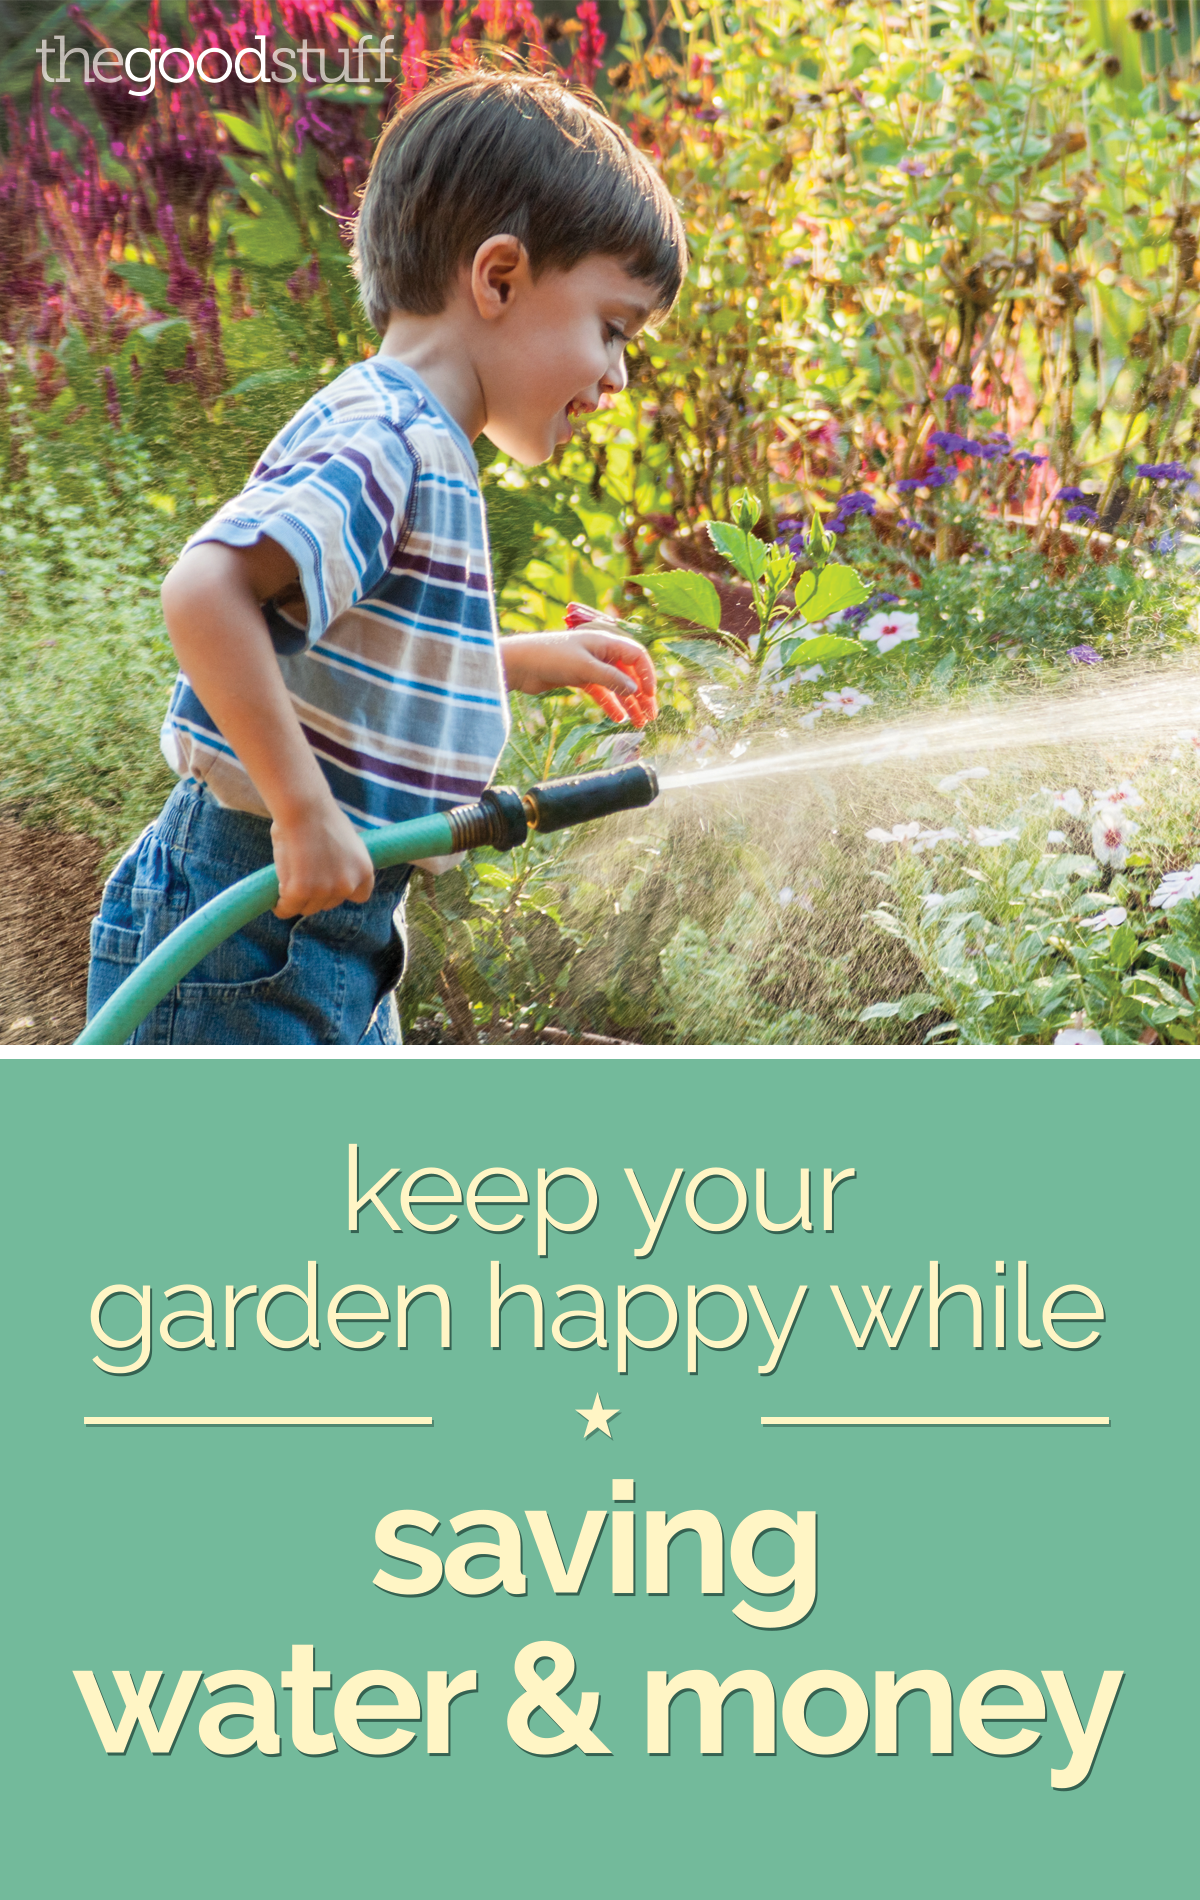 Keep Your Garden Happy while Saving Water & Money | thegoodstuff